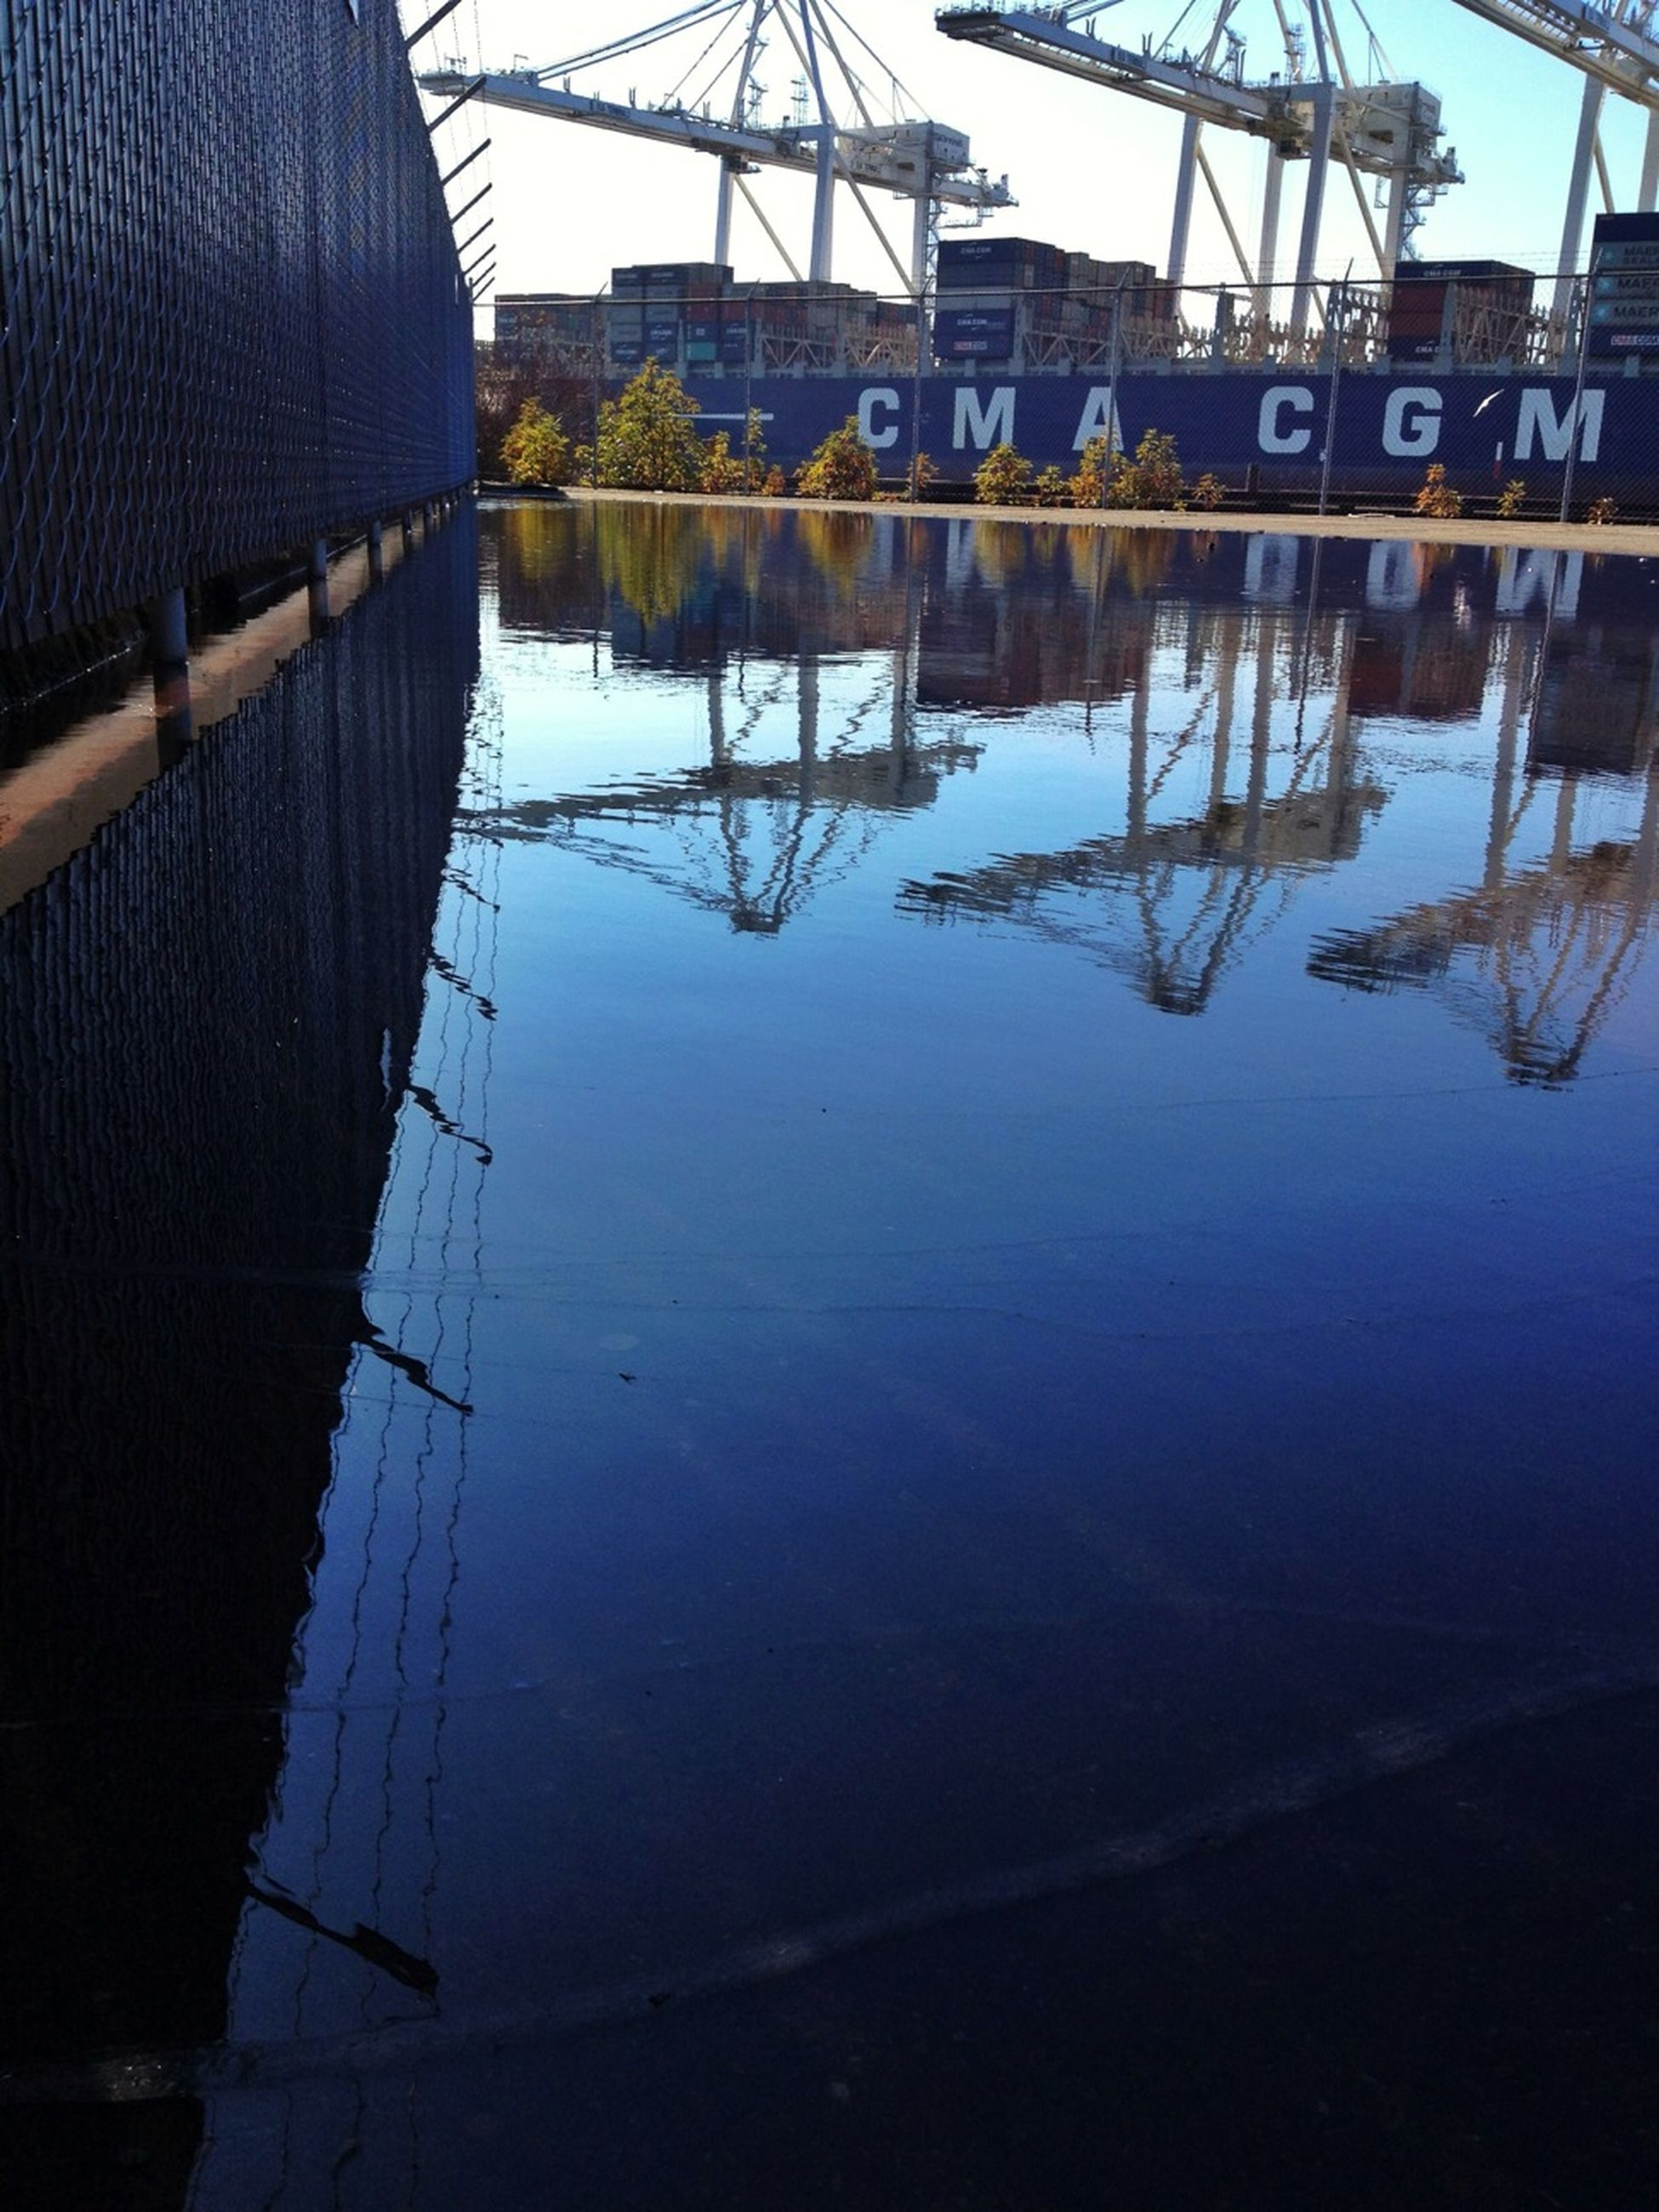 water, reflection, built structure, architecture, building exterior, nautical vessel, transportation, sky, river, lake, moored, boat, waterfront, mode of transport, outdoors, standing water, connection, day, no people, harbor